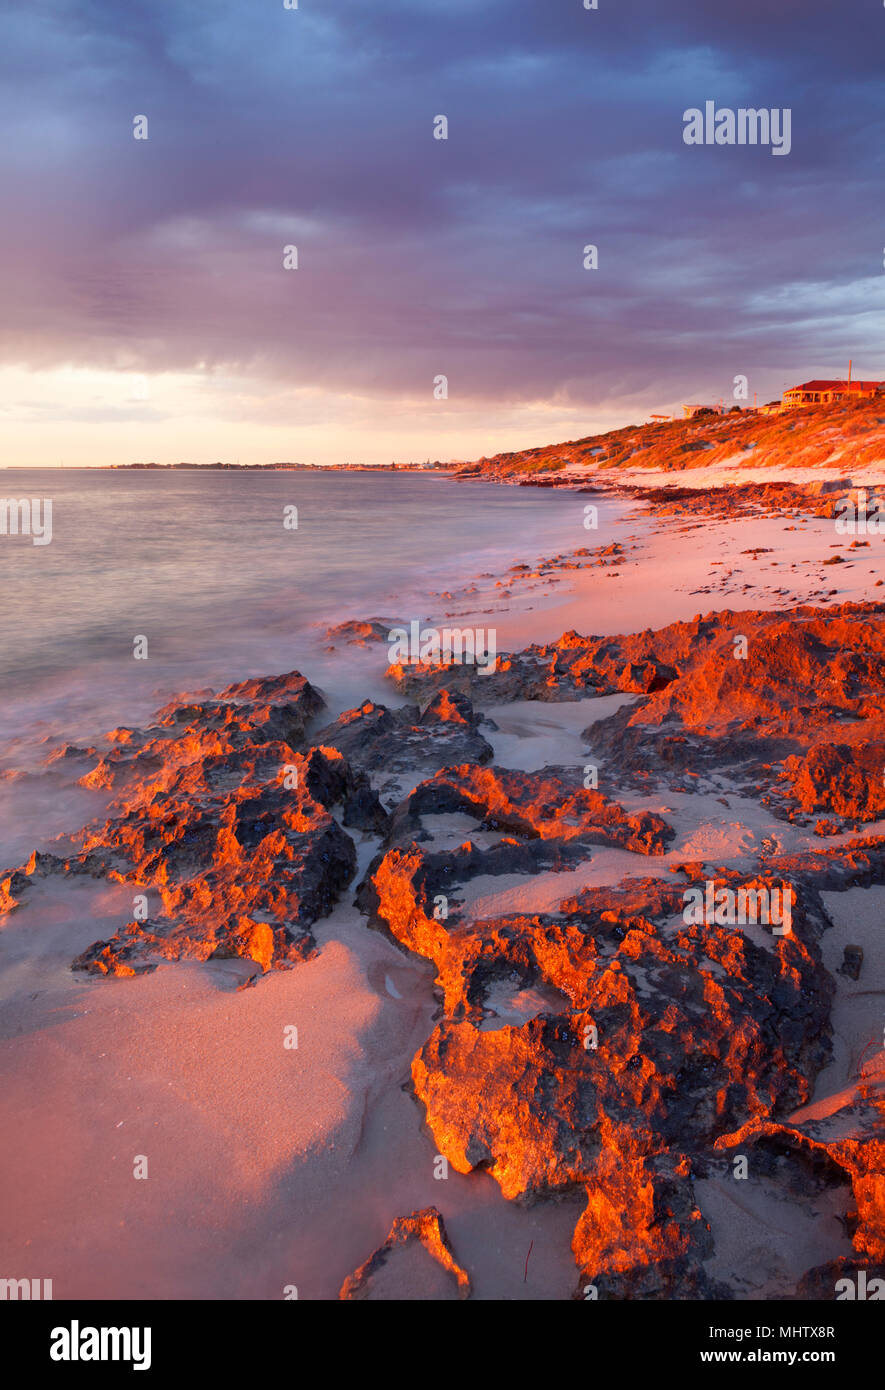 Limestone rocks at Watermans Beach at sunset.  Marmion Marine Park. Perth, Western Australia - Stock Image